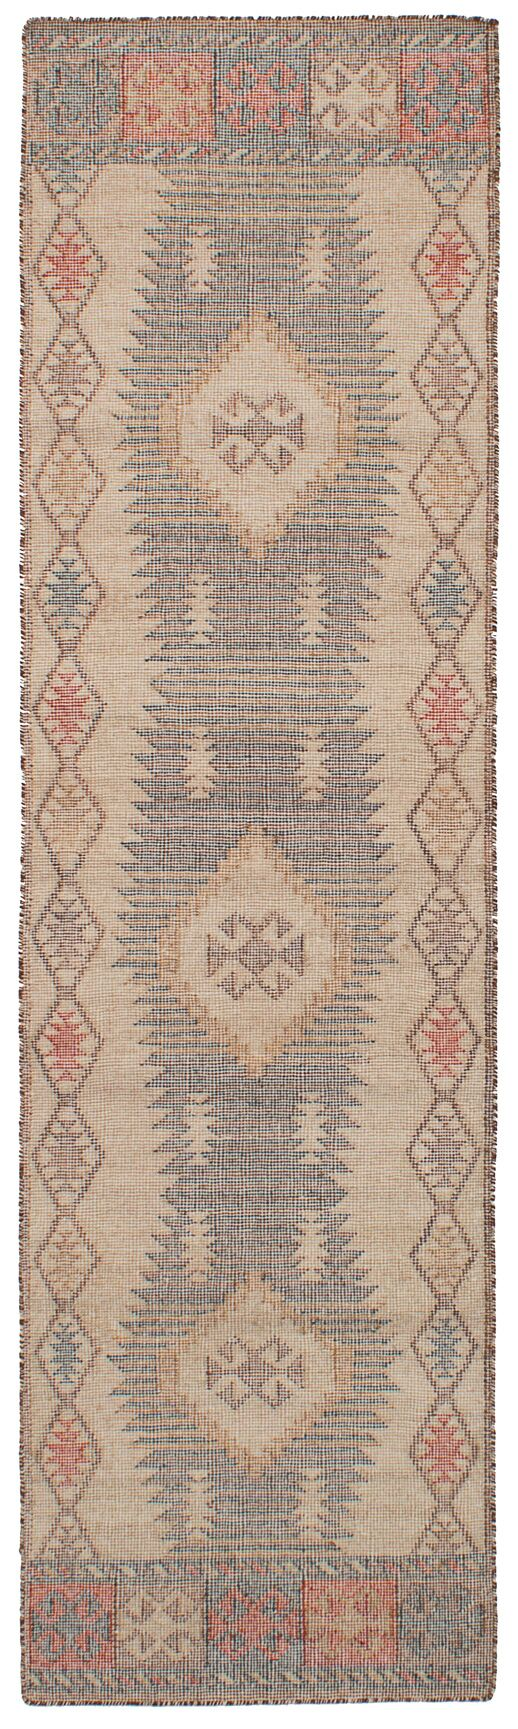 Bevers Hand-Woven Wool Brown/Cream Area Rug Rug Size: Runner 2'6